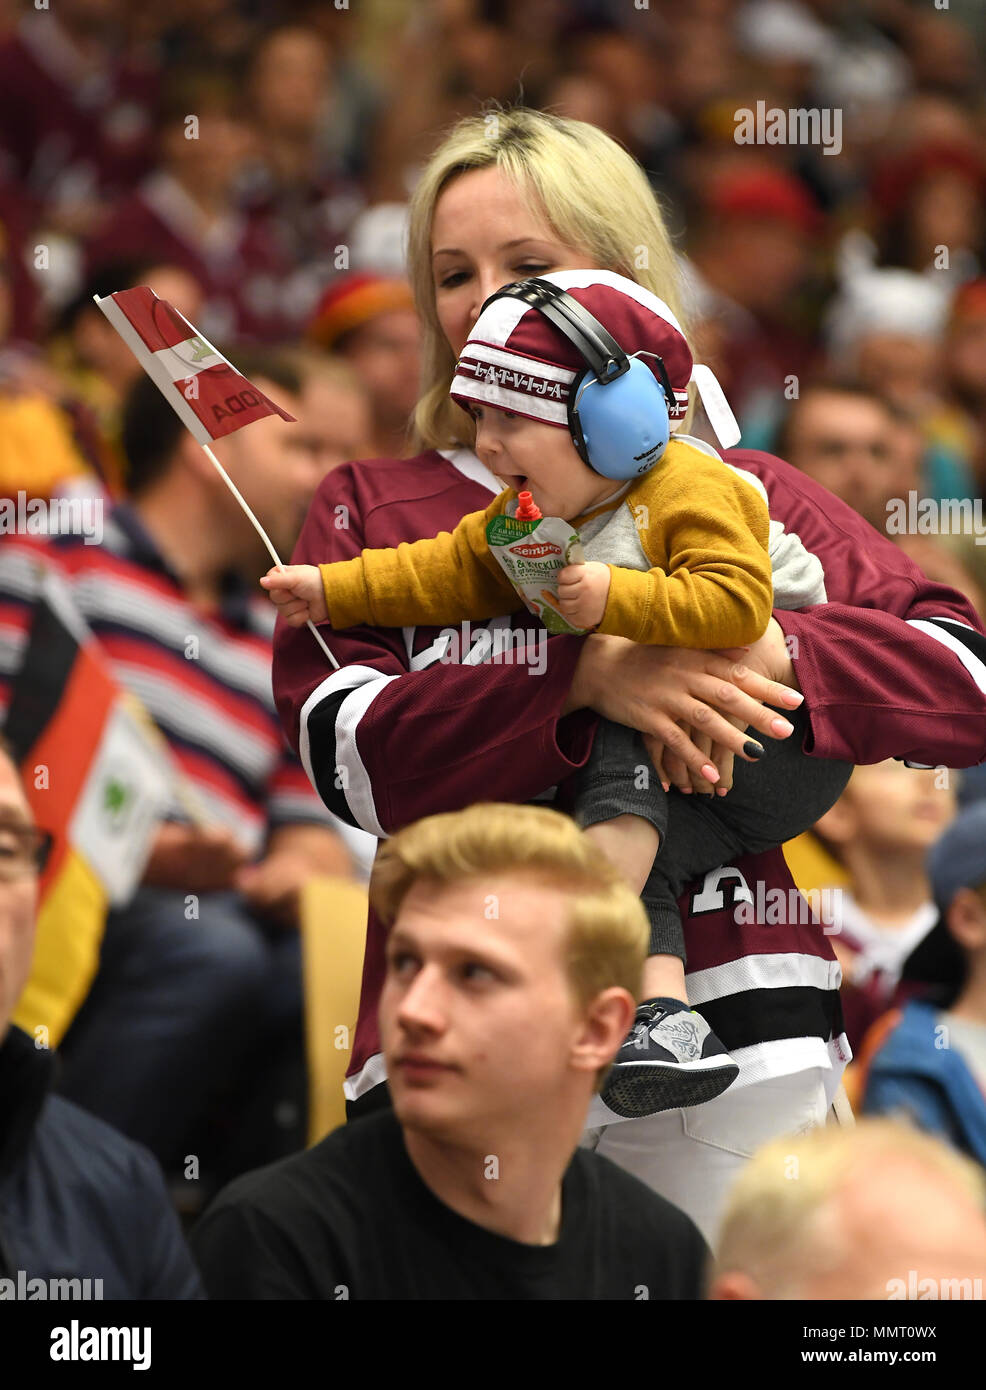 Herning, Denmark.. 12th May, 2018. Fans of Team Latvia during the match between Latvia and Germany on 12.05.2018 in Herning, Denmark. (Photo by Marco Leipold/City-Press GbR) | usage worldwide Credit: dpa picture alliance/Alamy Live News Stock Photo